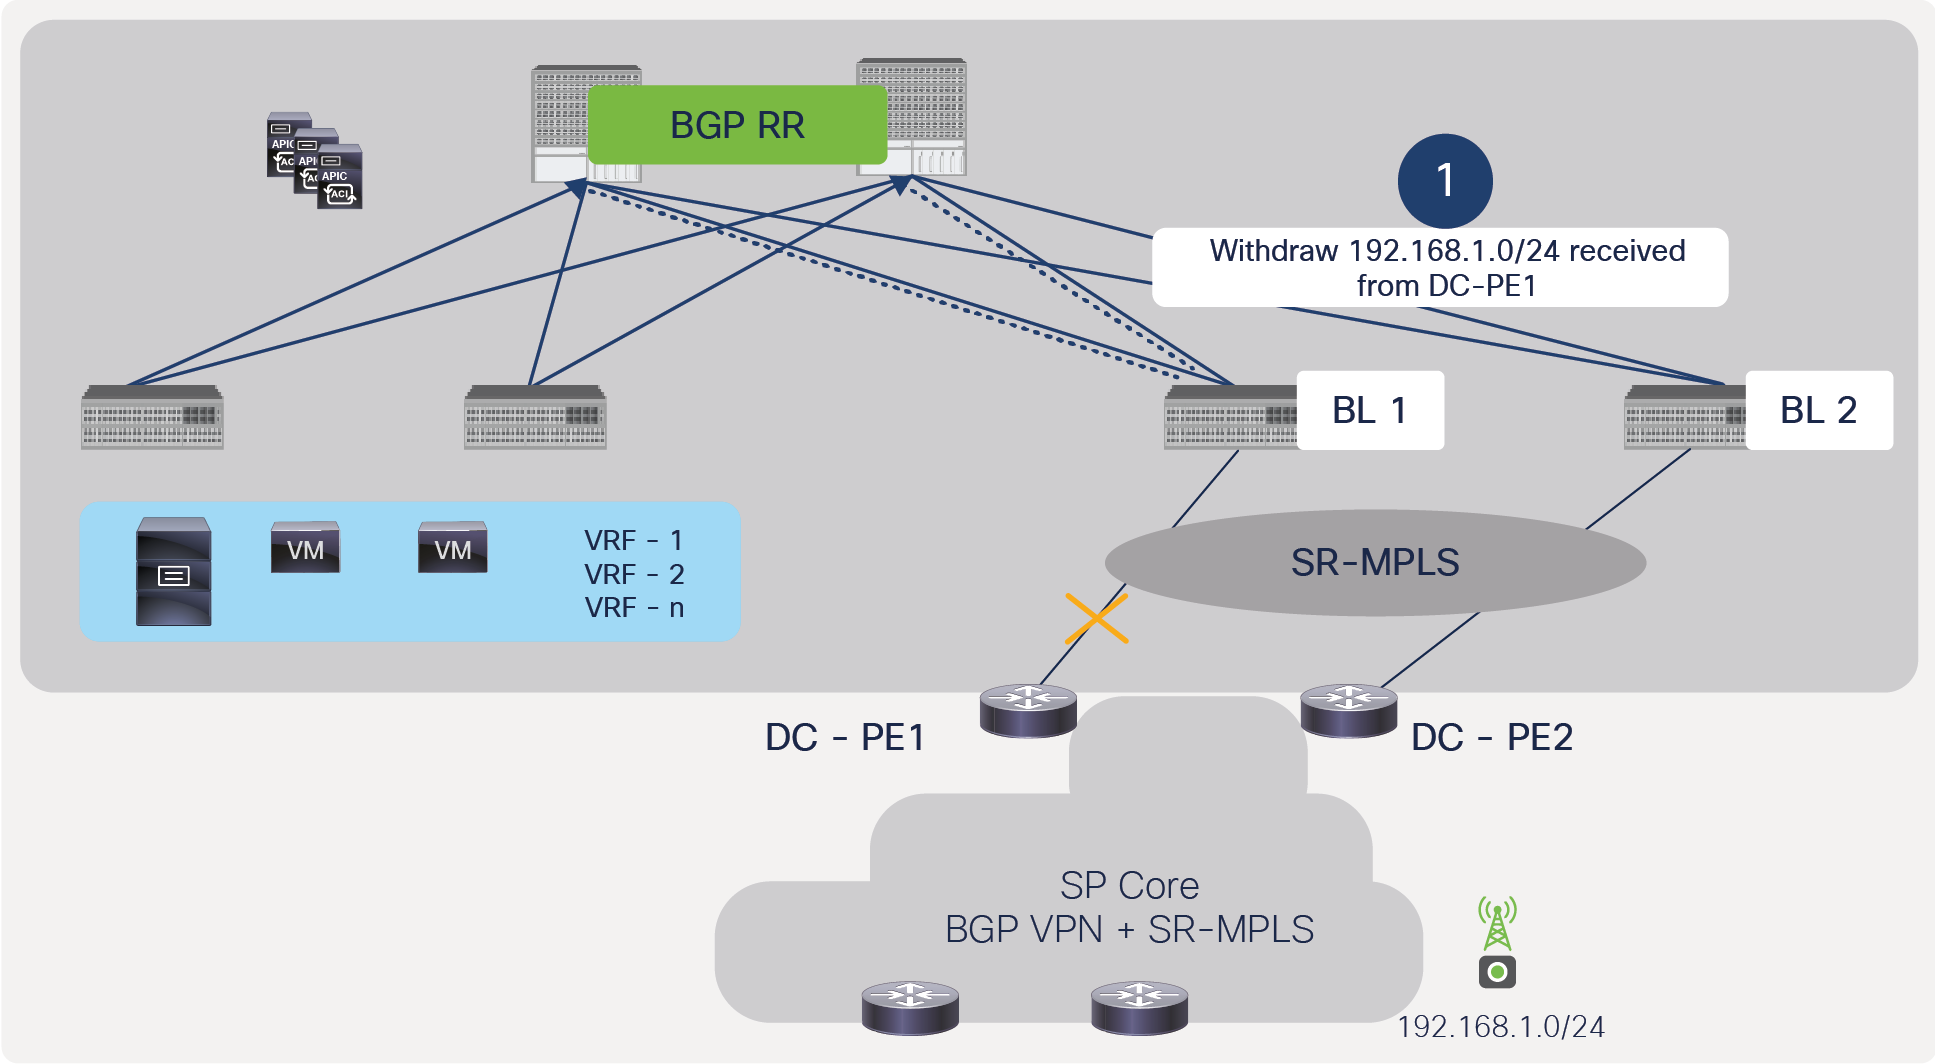 BGP withdraw message from ACI border to spine due to failure of link between ACI border leaf and DC-PE, without full redundancy